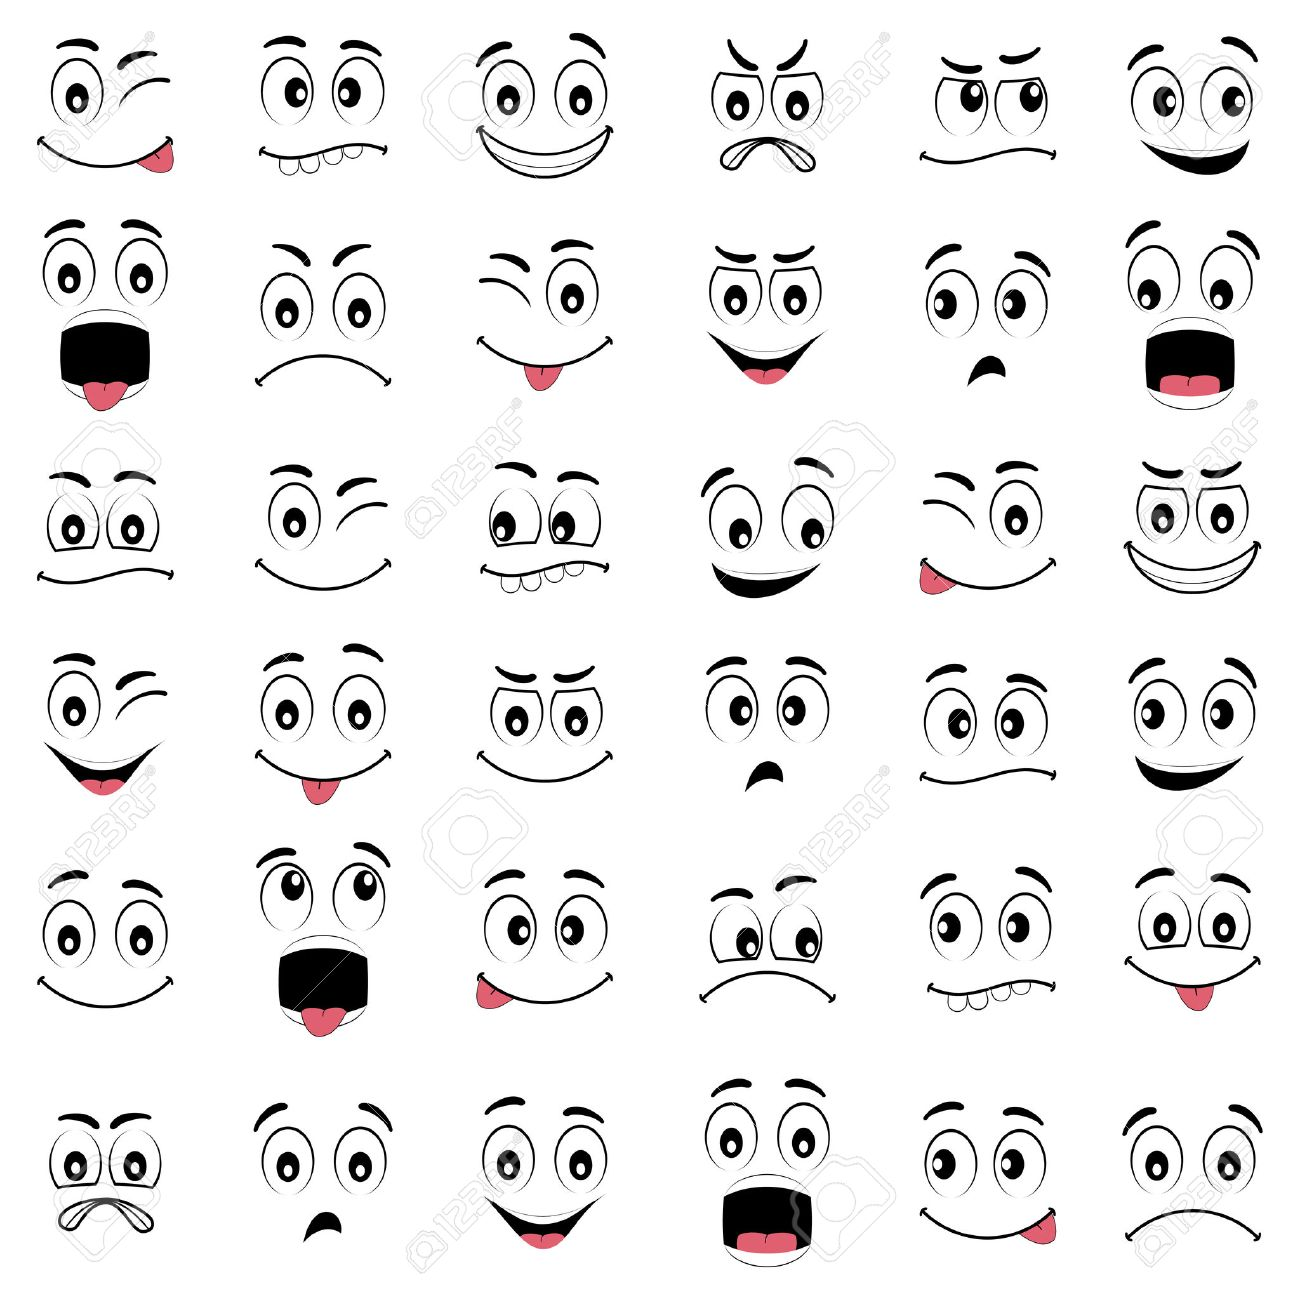 Cartoon faces with different expressions, featuring the eyes and mouth, design elements on white background - 52369873